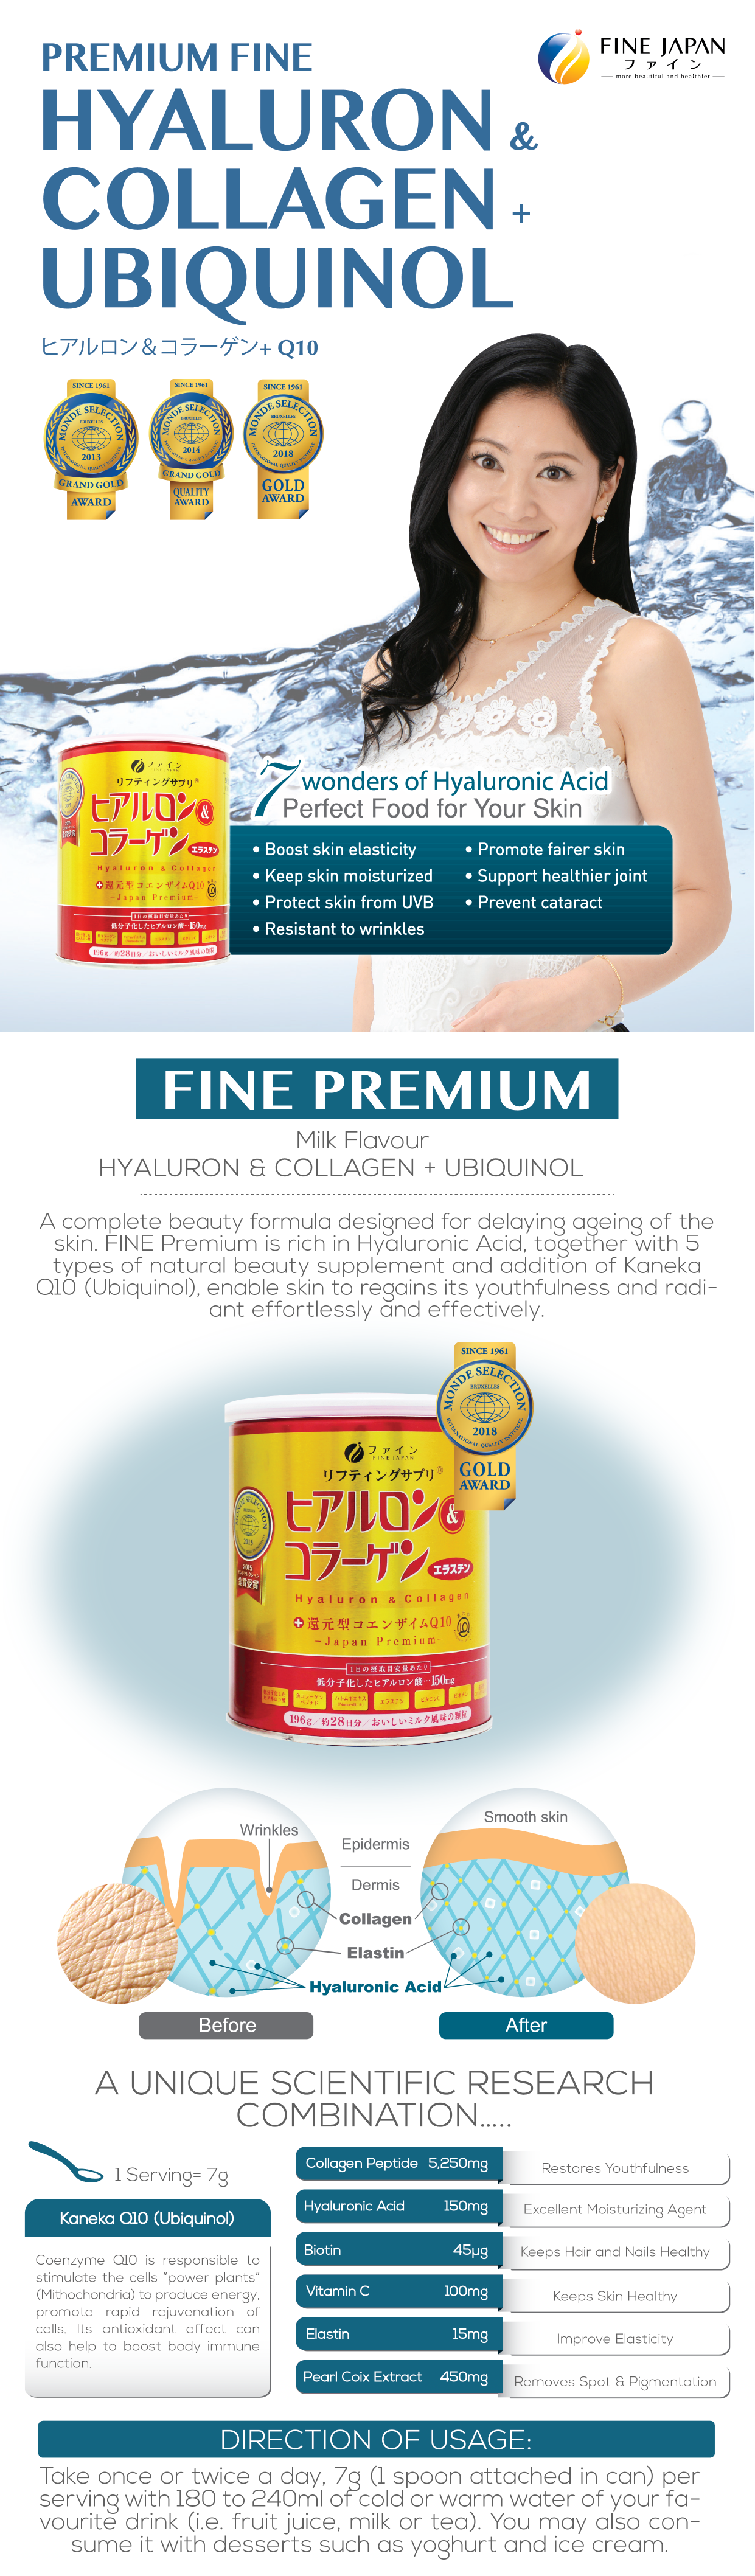 FINE PREMIUM HYALURON & COLLAGEN WITH UBIQUINOL Q10 LANDING PAGE